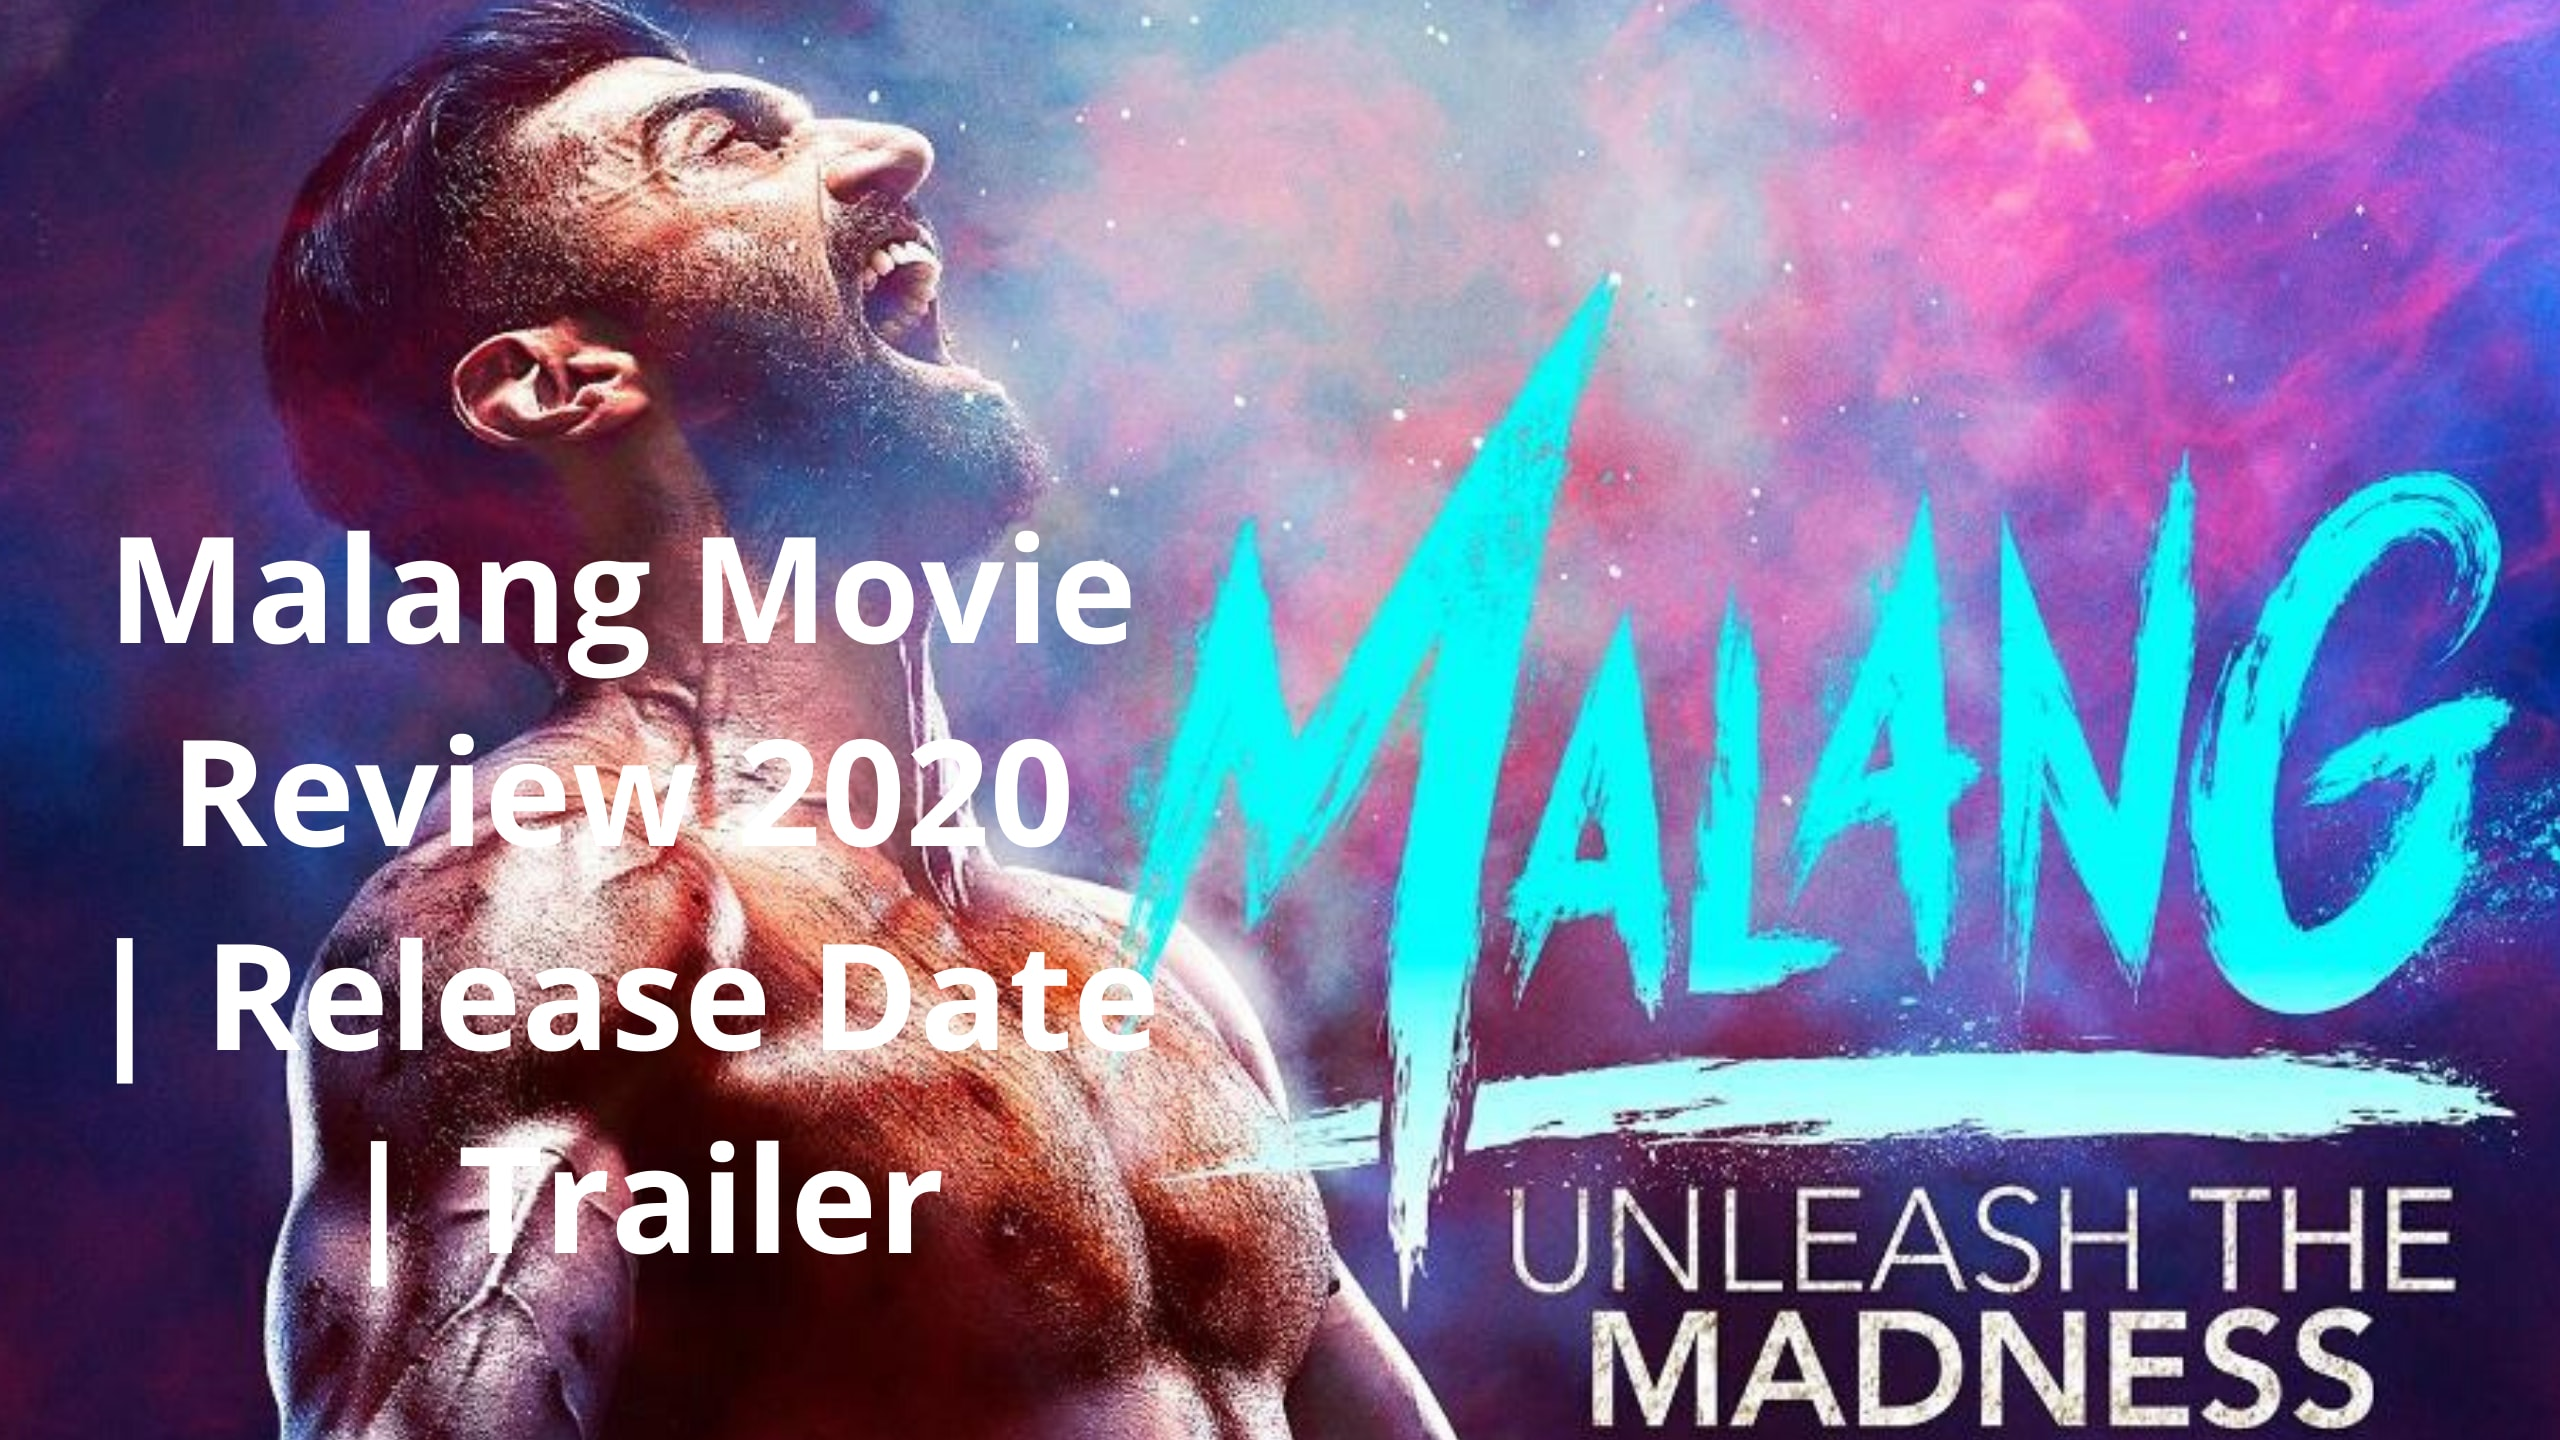 Malang Movie Review 2020